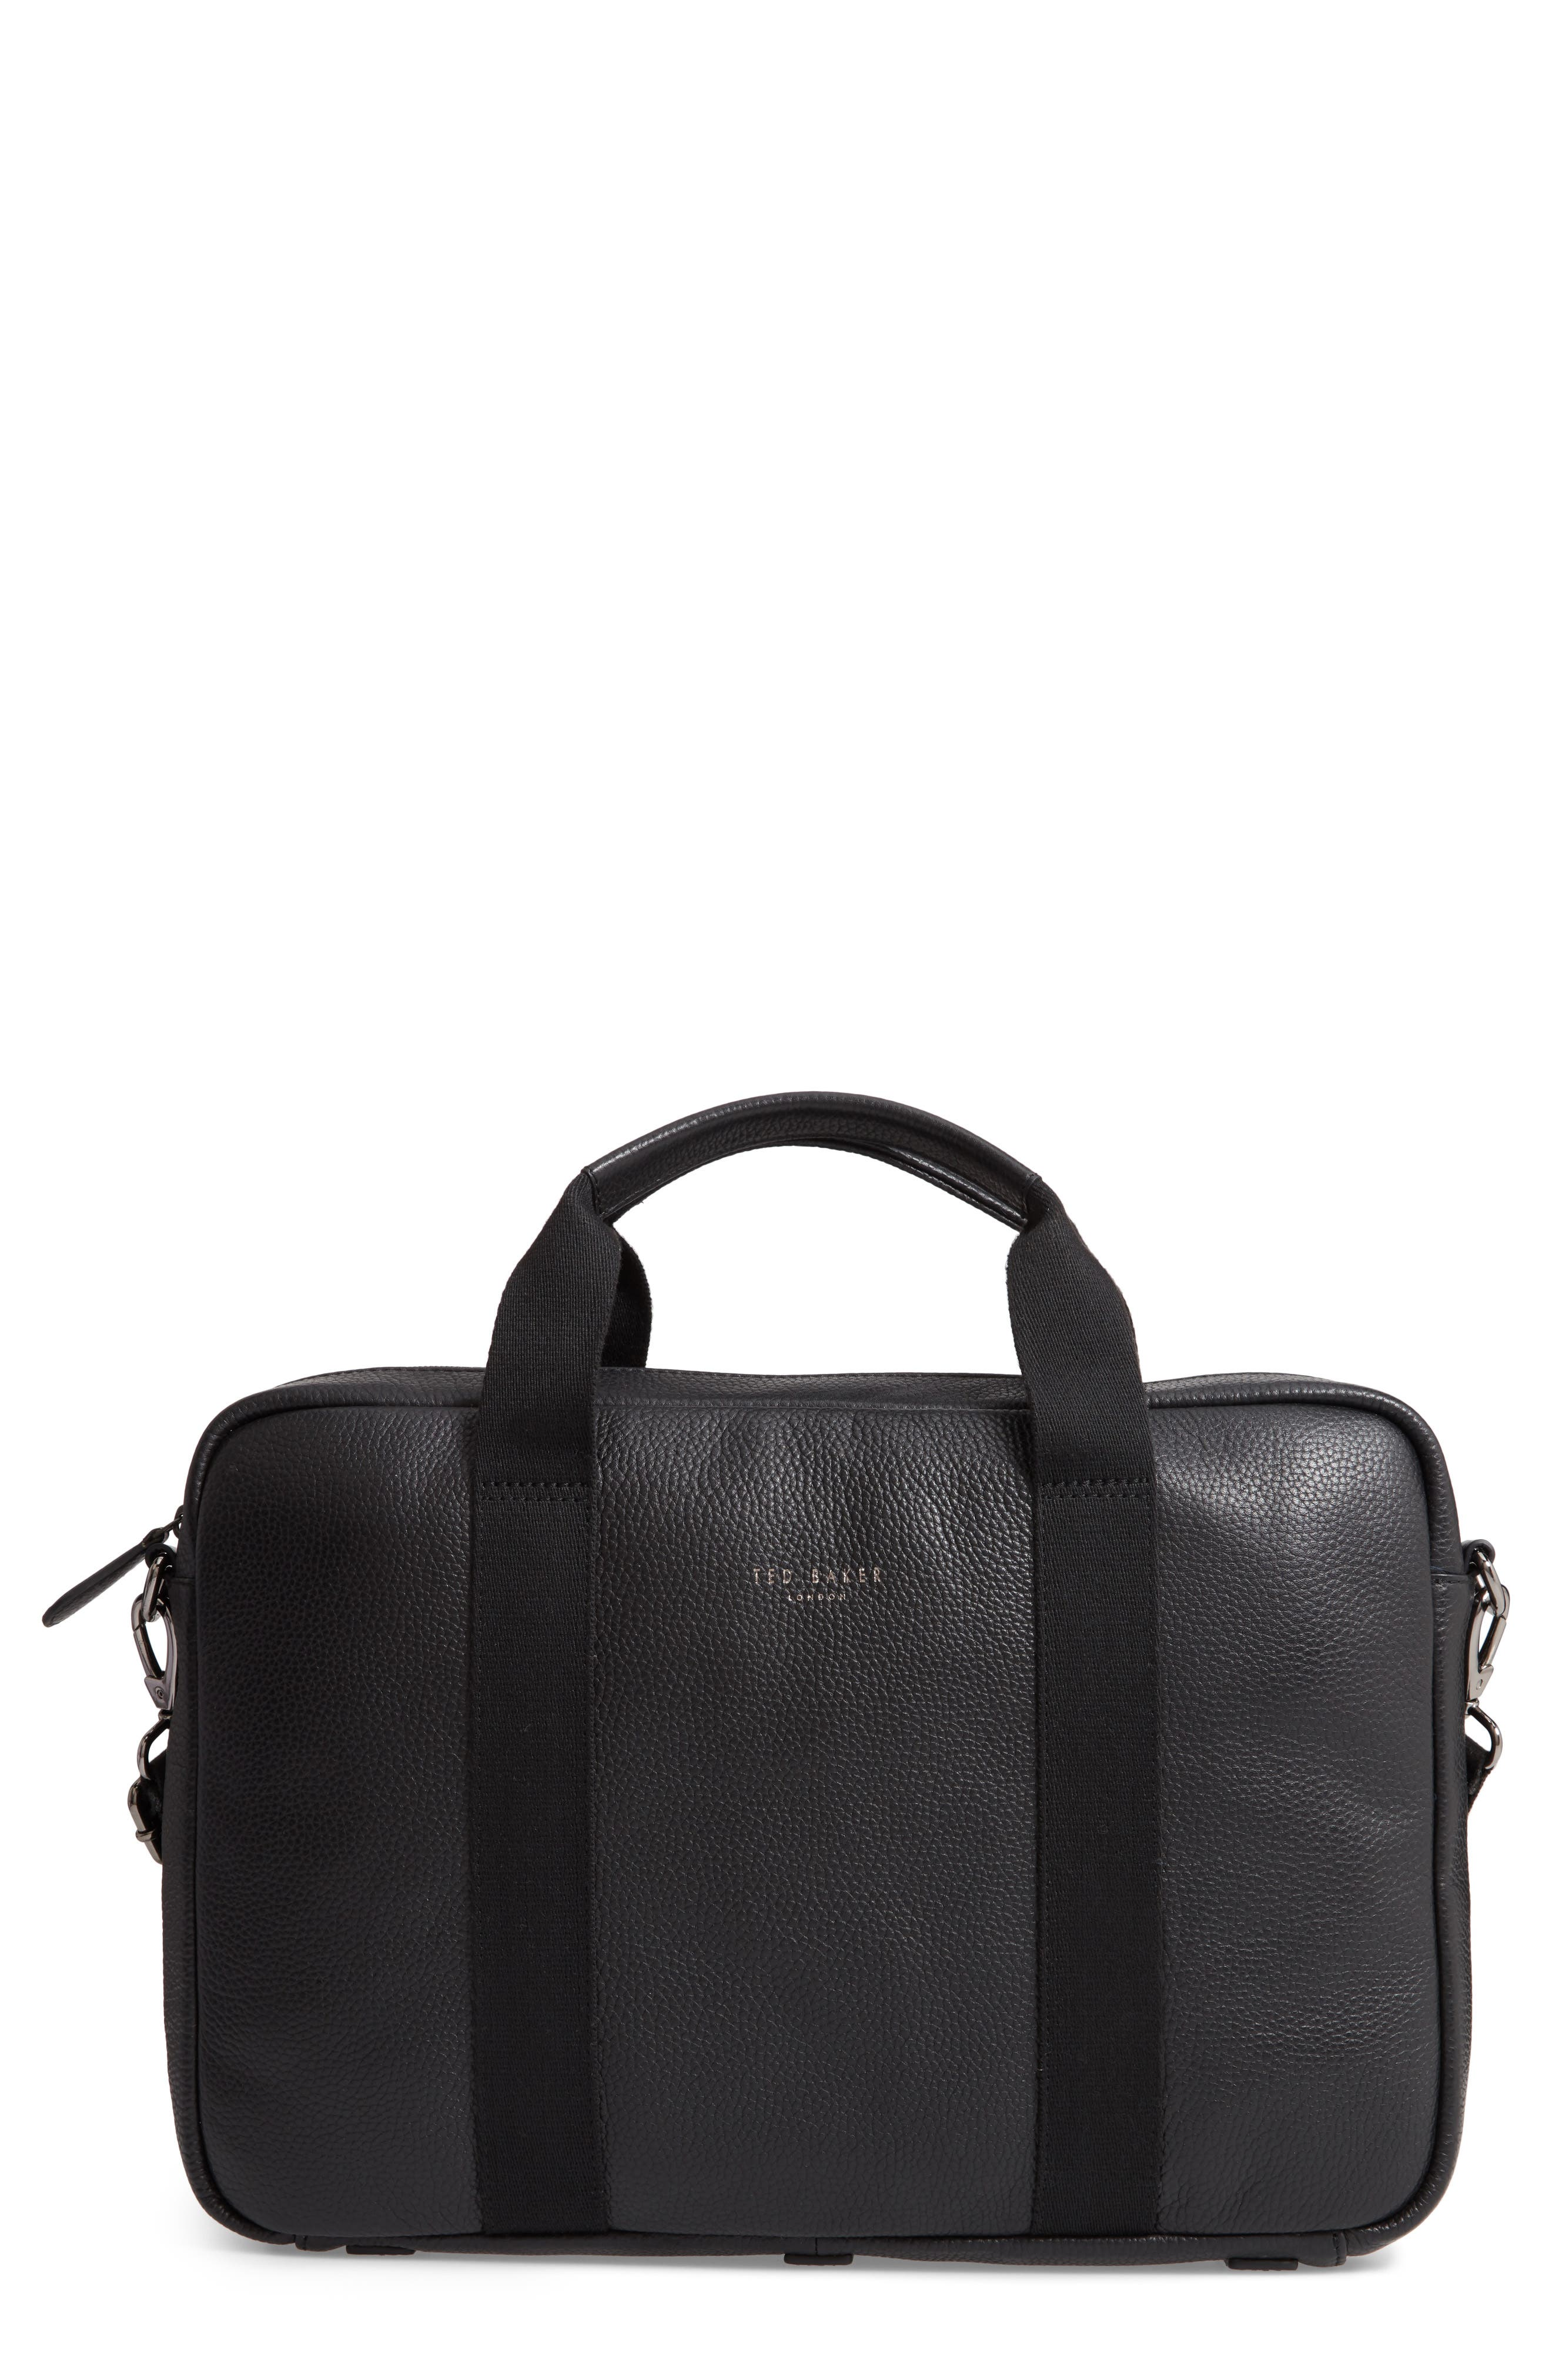 d5b0749c6bd07e Ted Baker London Carry-On Luggage